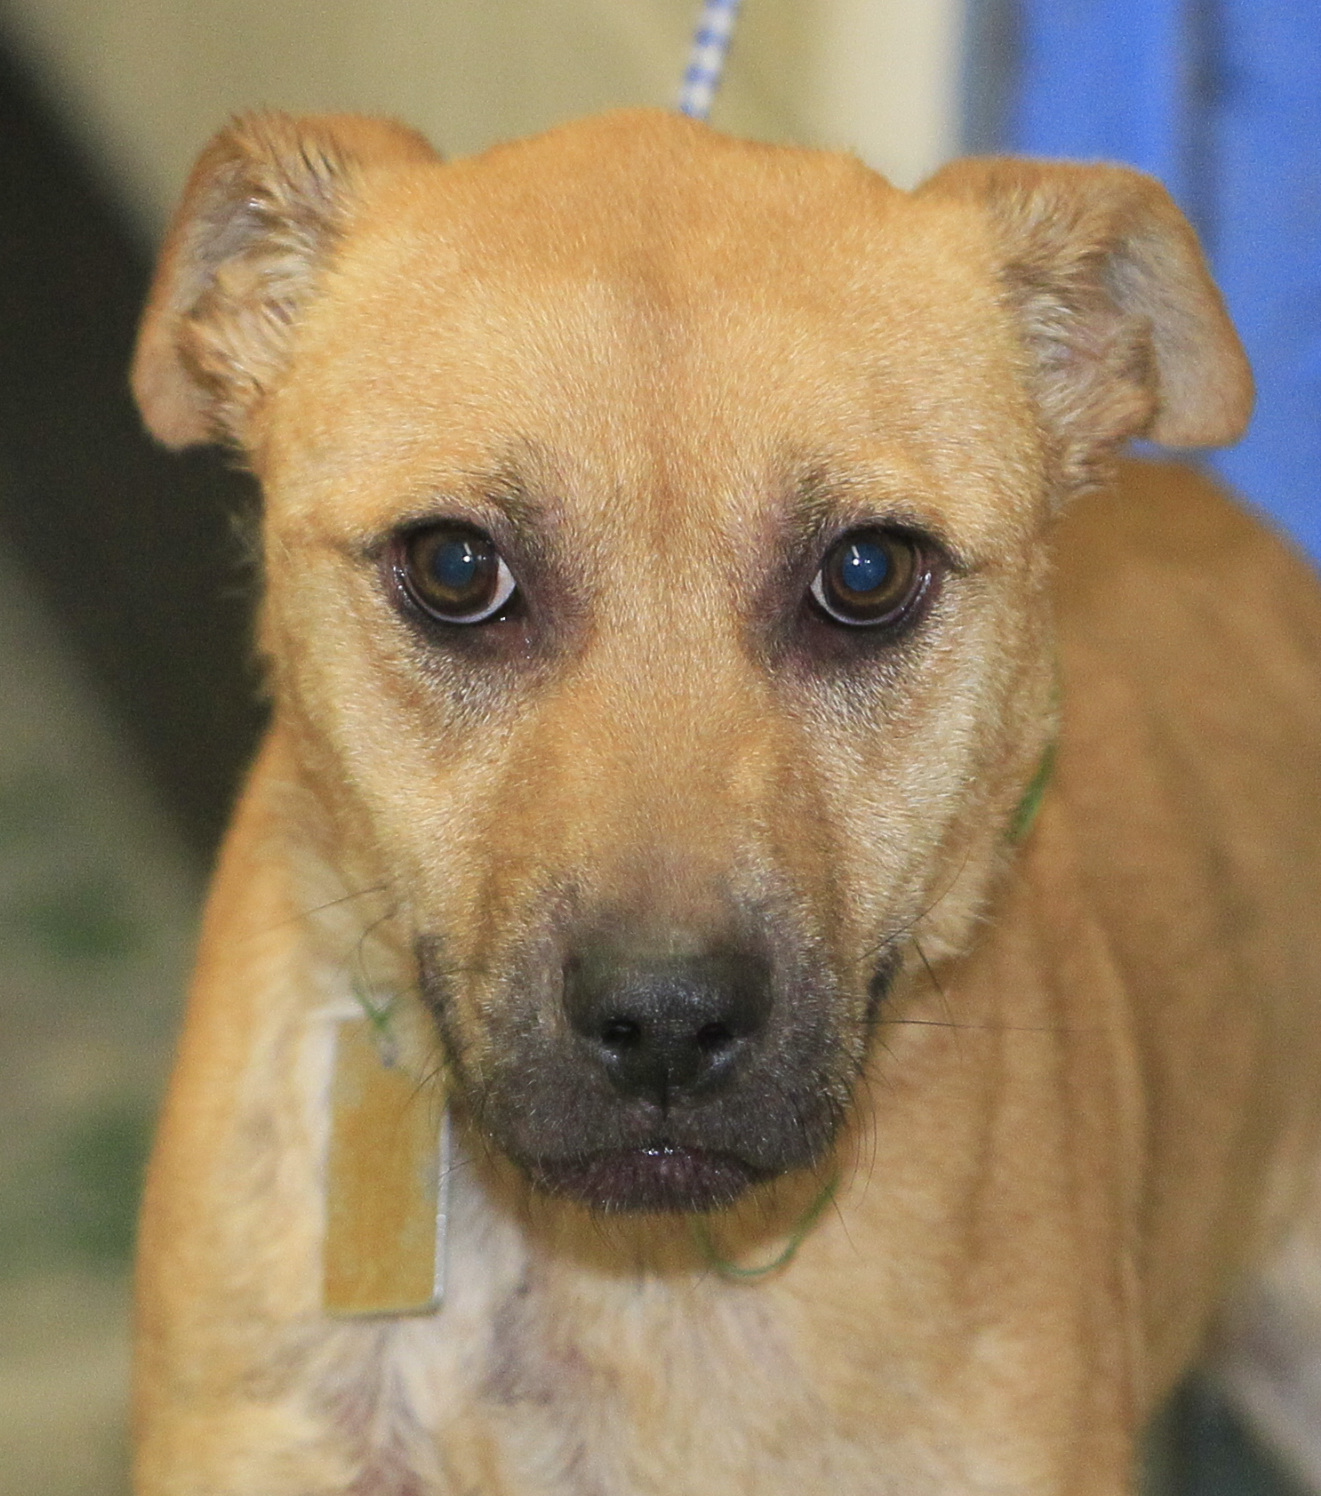 Lucas County Dogs For Adoption: 1-12